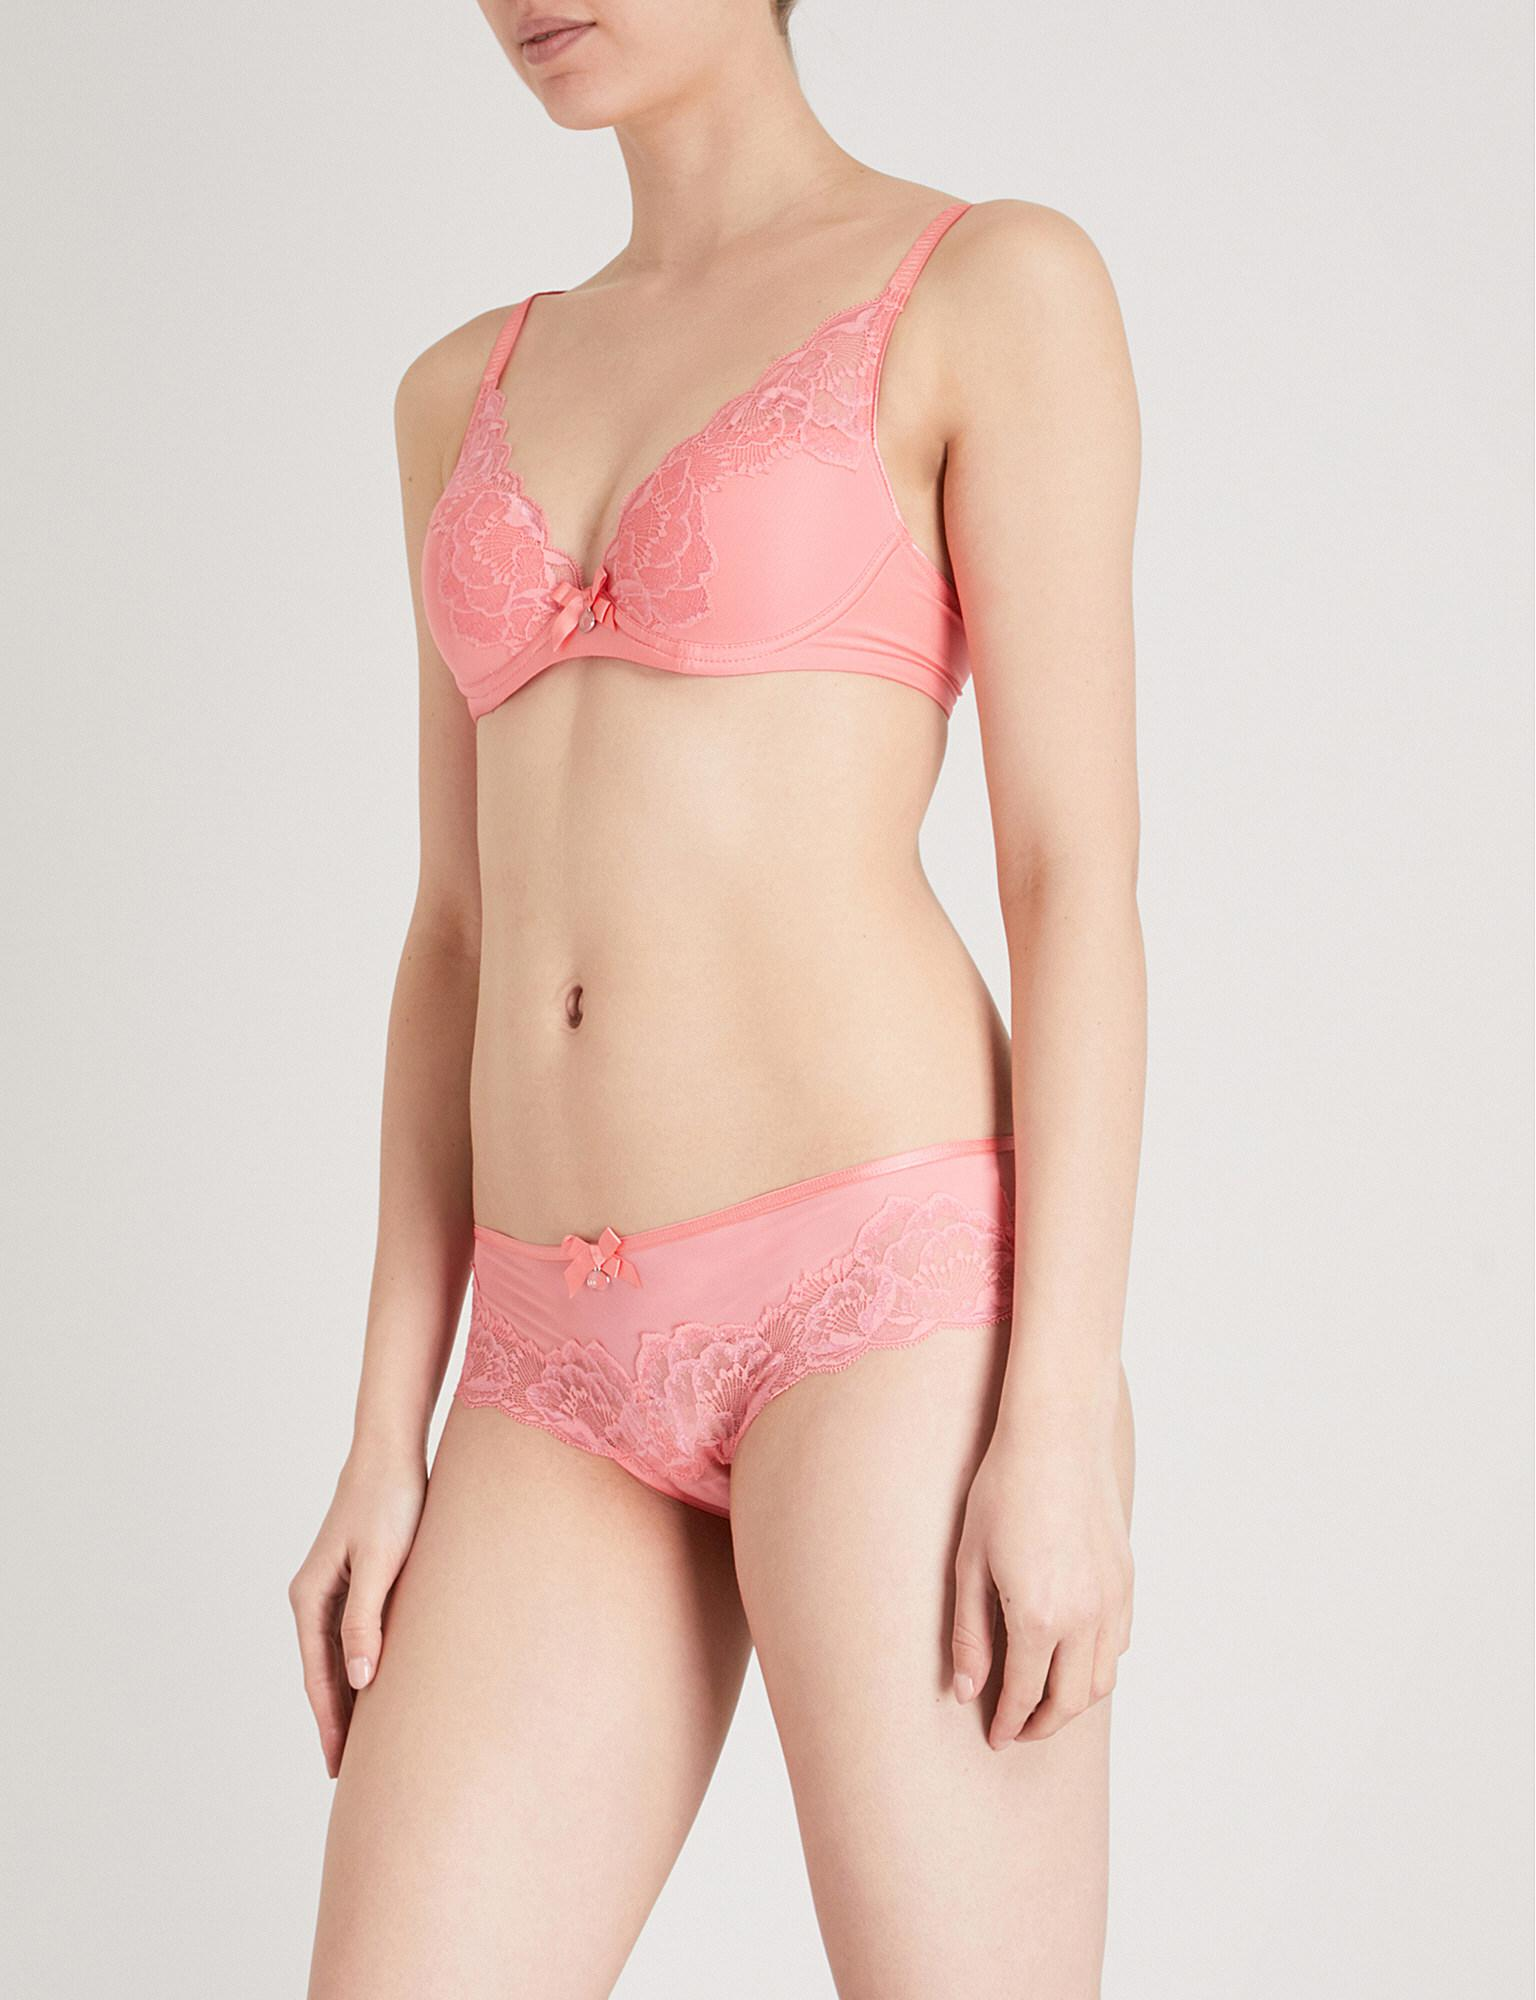 98f021a29dfd3 Lyst - Chantelle Orangerie Mesh And Lace Plunge T-shirt Bra in Pink